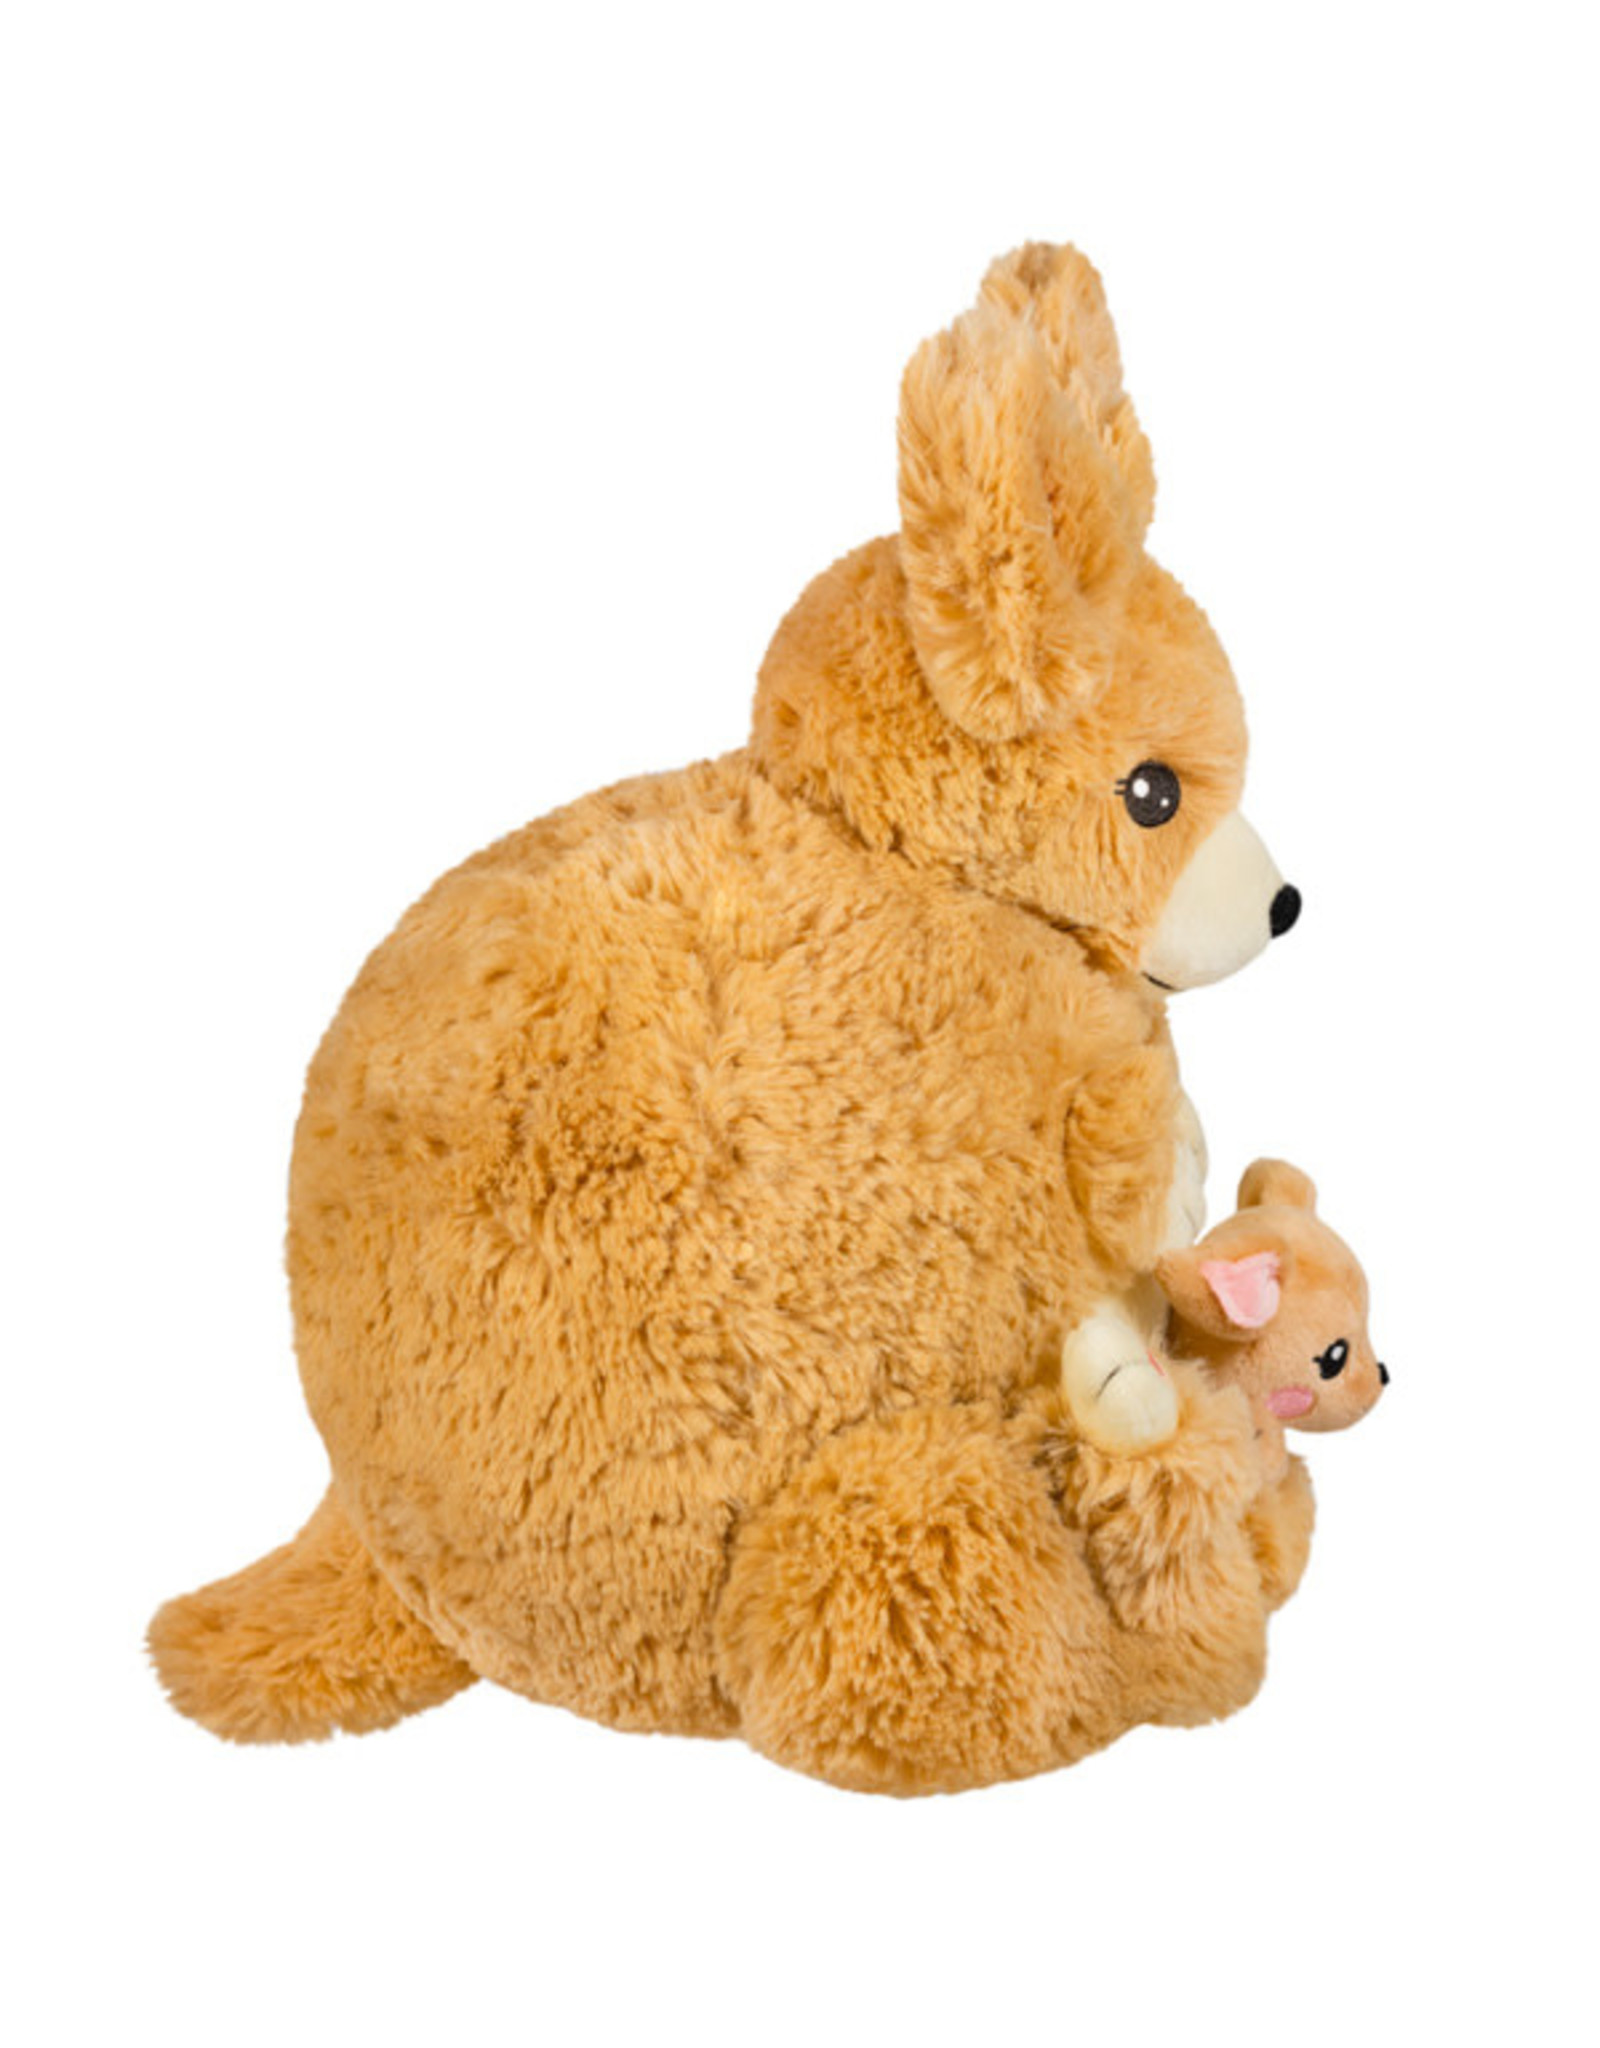 Squishable Cuddly Kangaroo - Mini